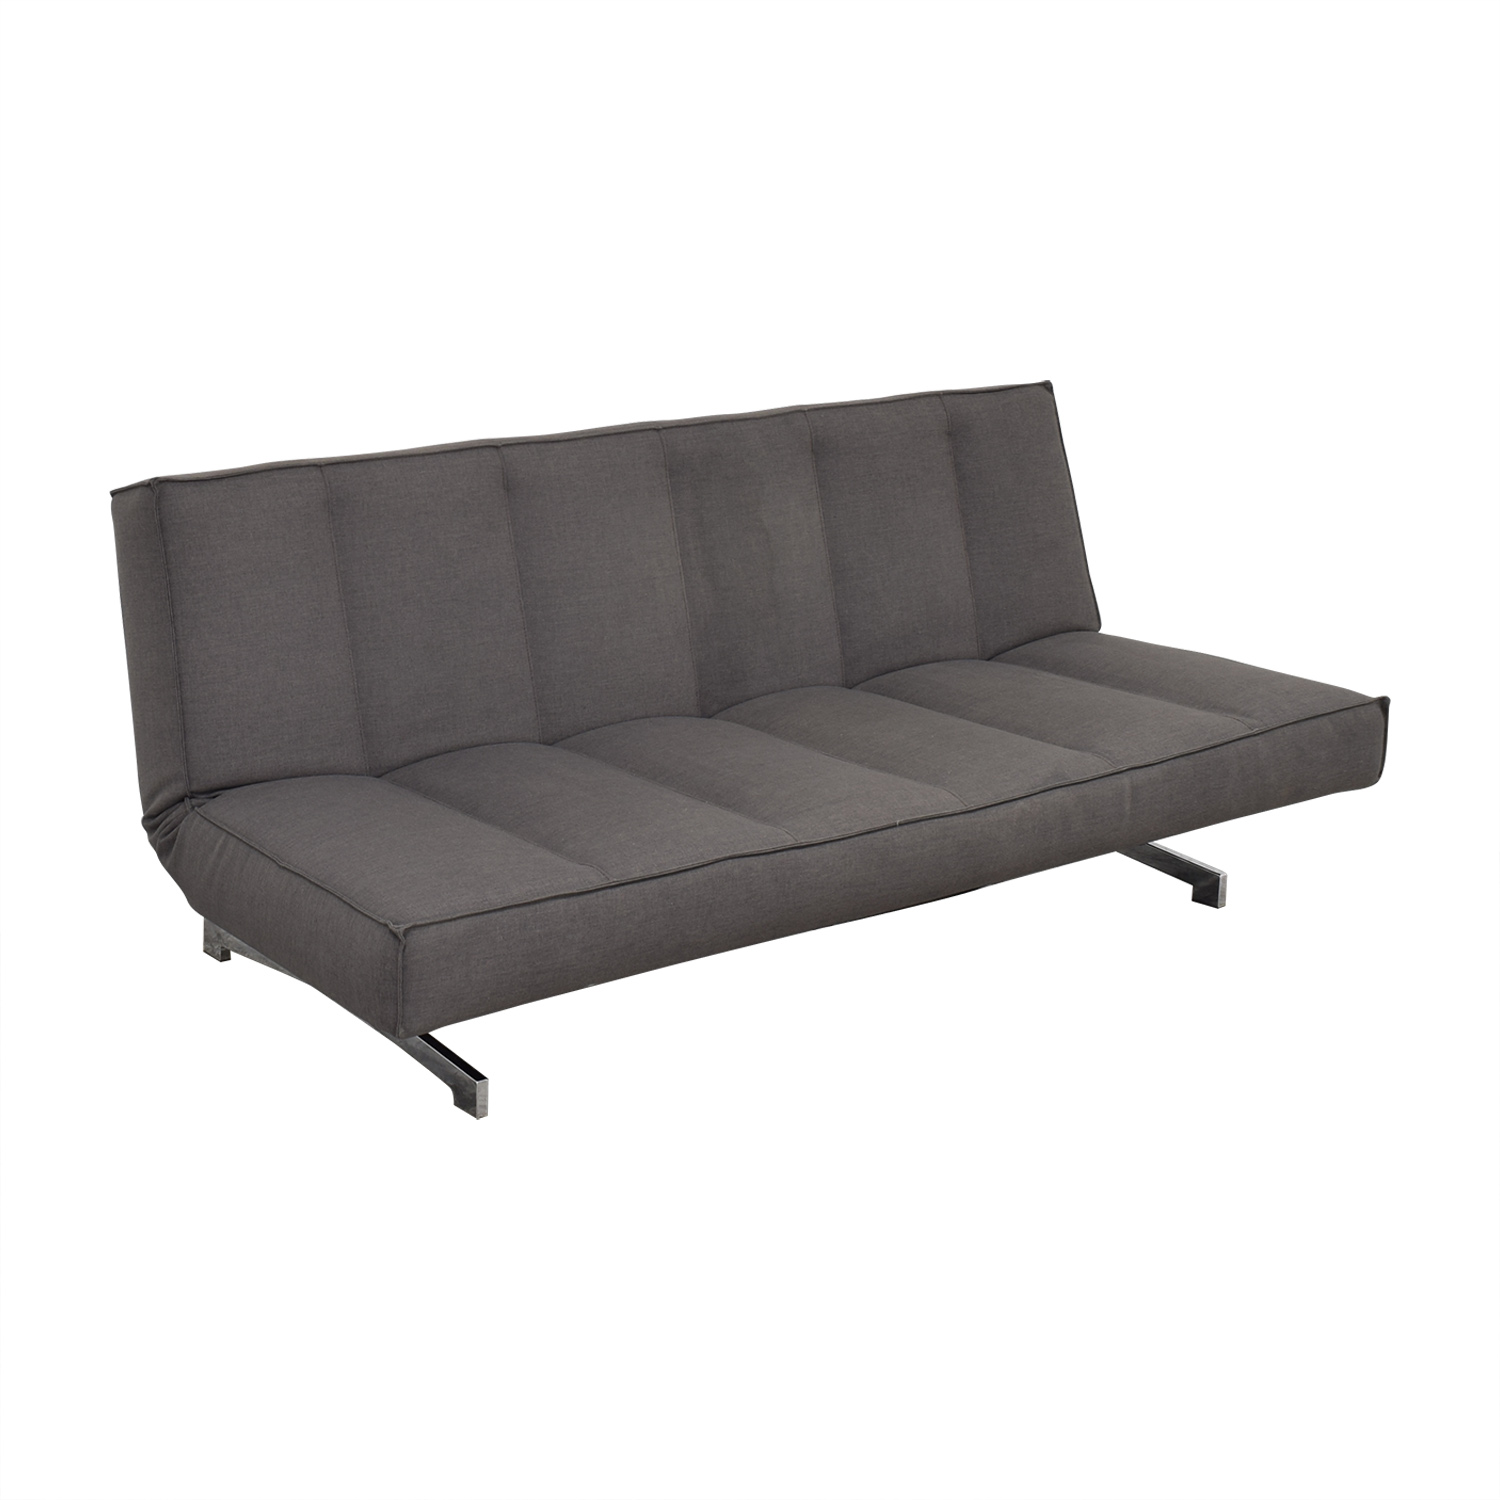 Innovation Living Sofa Bed / Sofa Beds